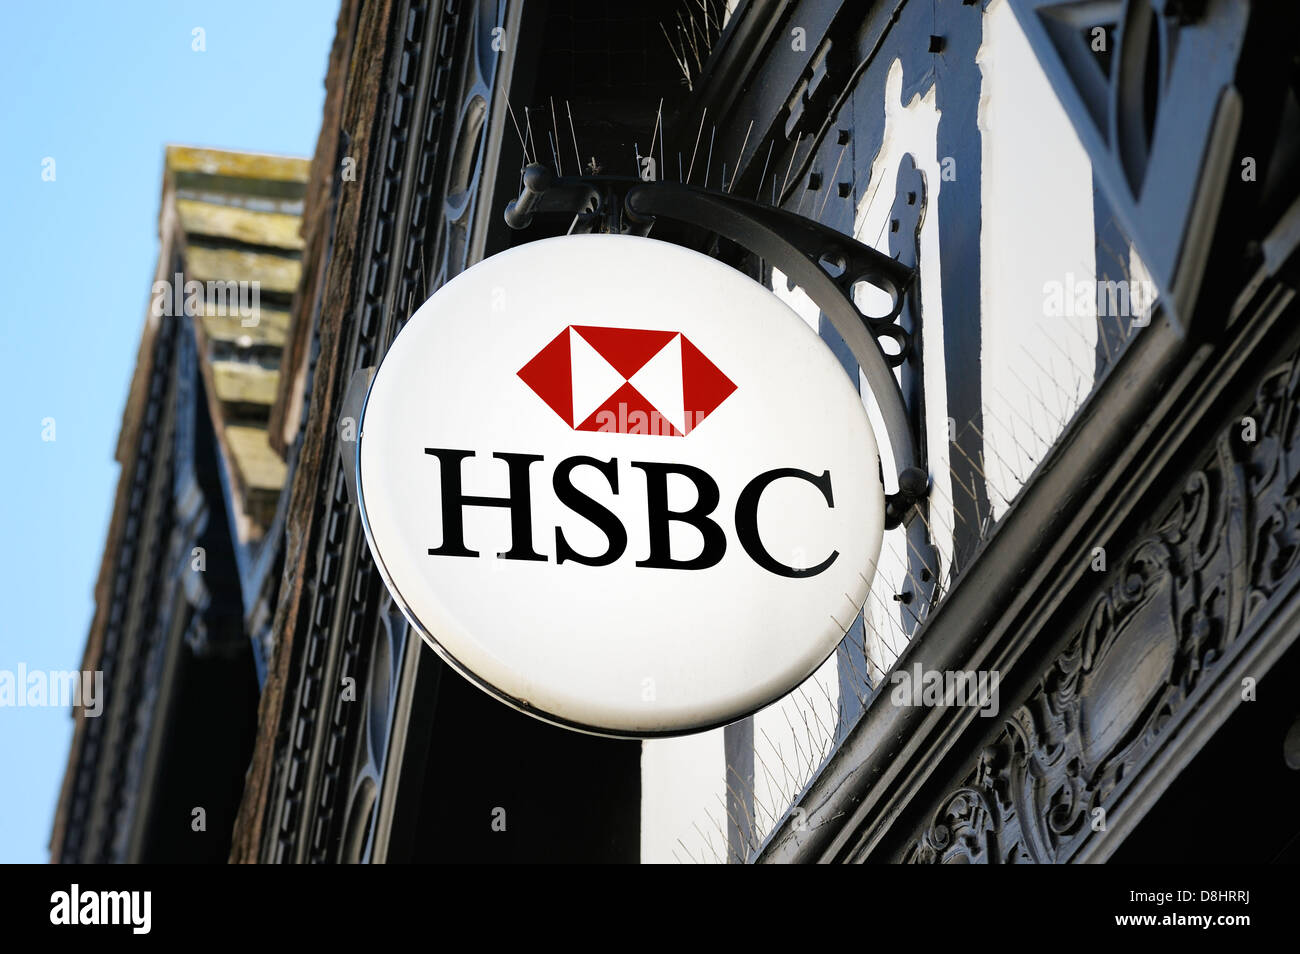 HSBC logo high street bank sign outside branch of HSBC bank in the Shropshire town of Ludlow, England Stock Photo